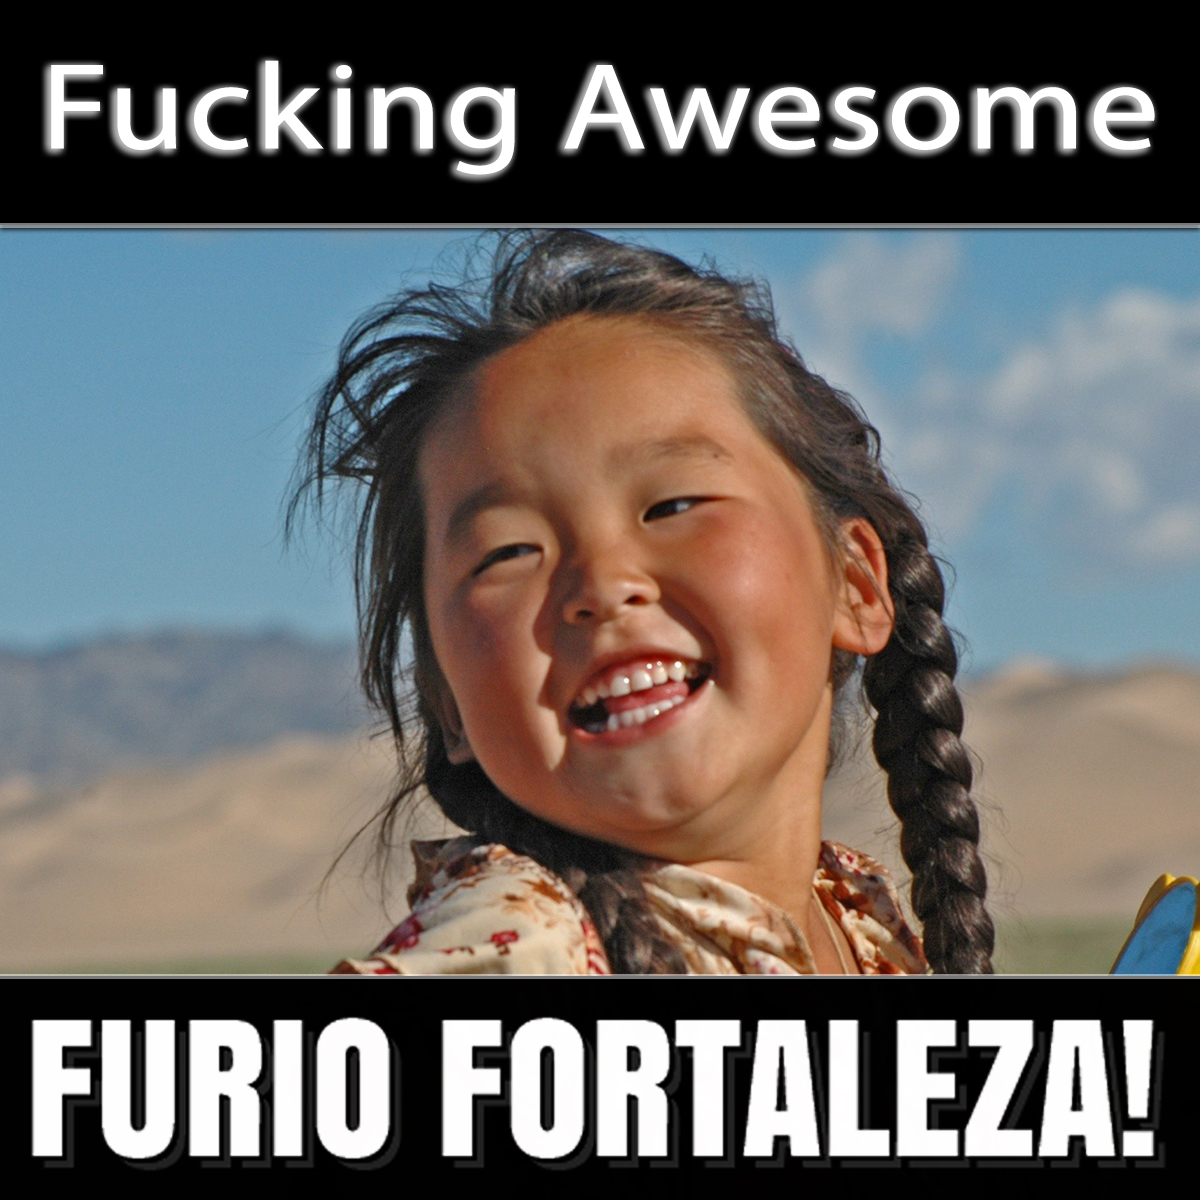 Furio Fortaleza! - 5.1 - Fucking Awesome